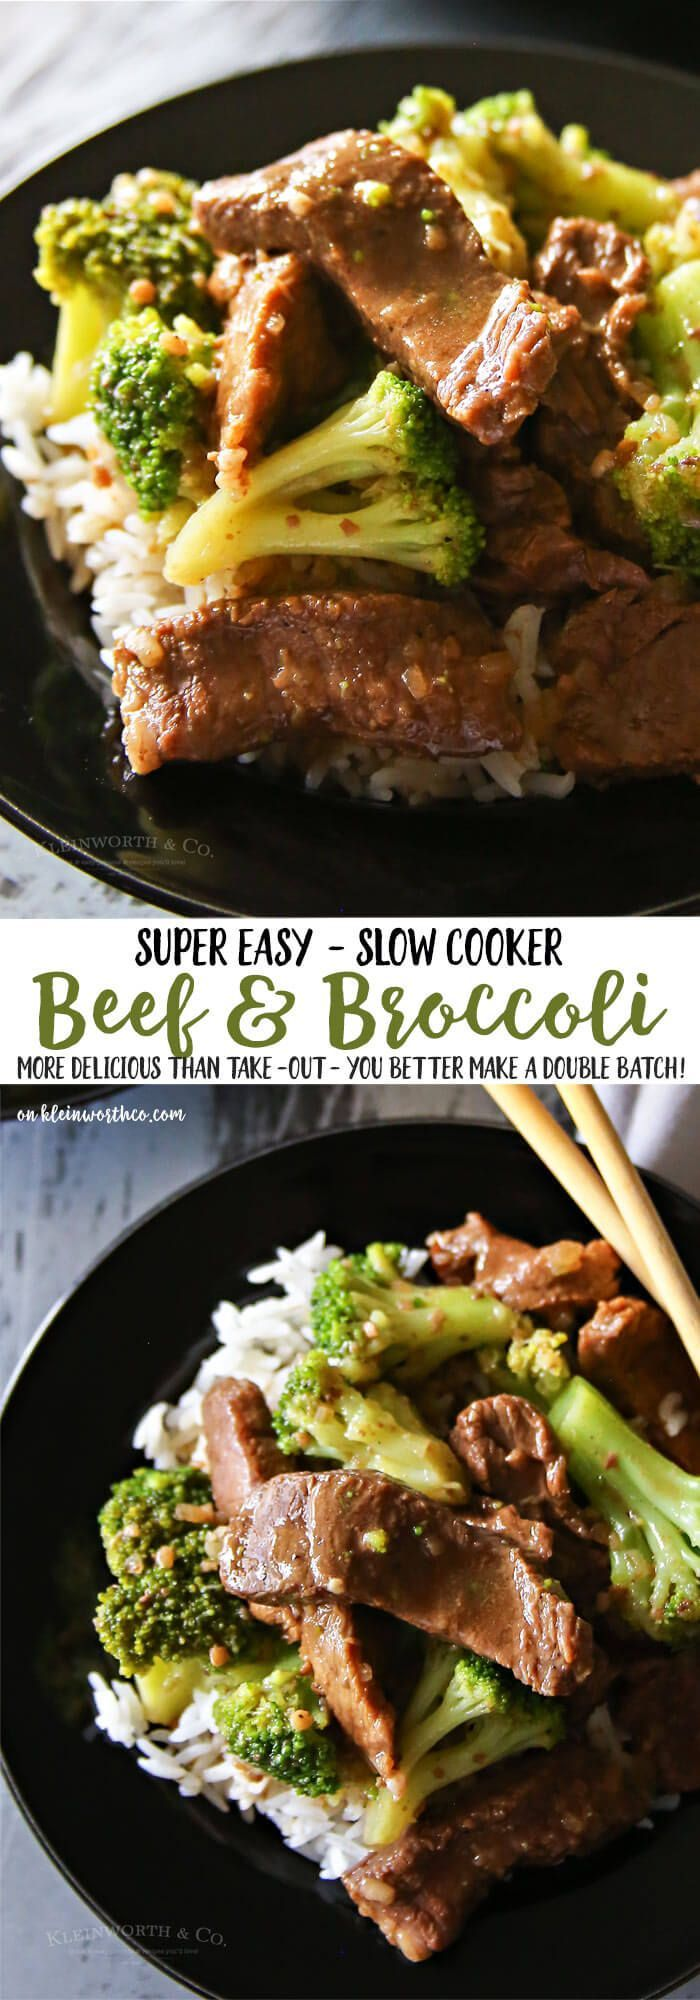 Slow Cooker Beef & Broccoli is such a simple recipe. Just toss in your ingredients & in just a few hours you have an easy family dinner that everyone loves.